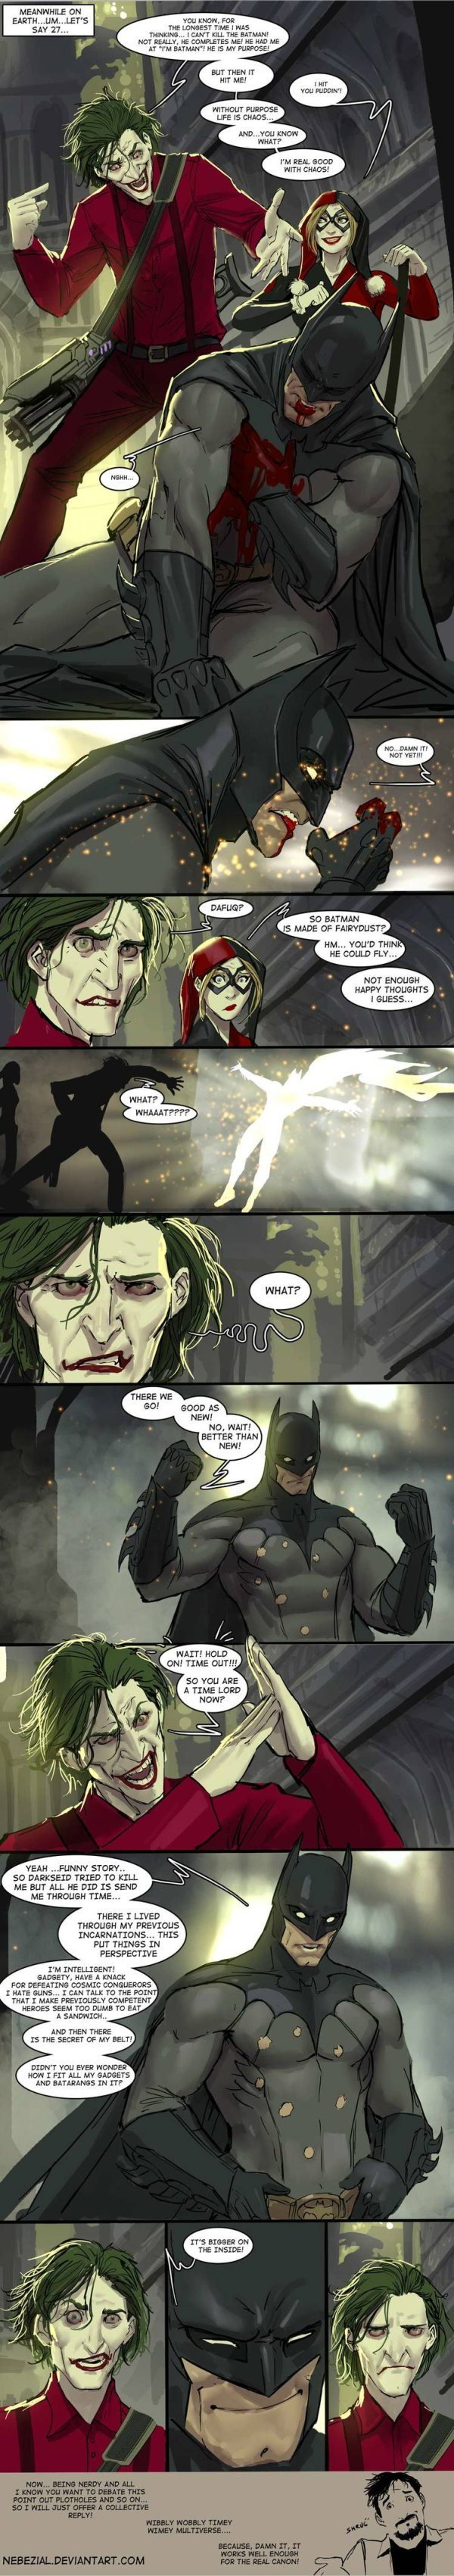 batman the time lord